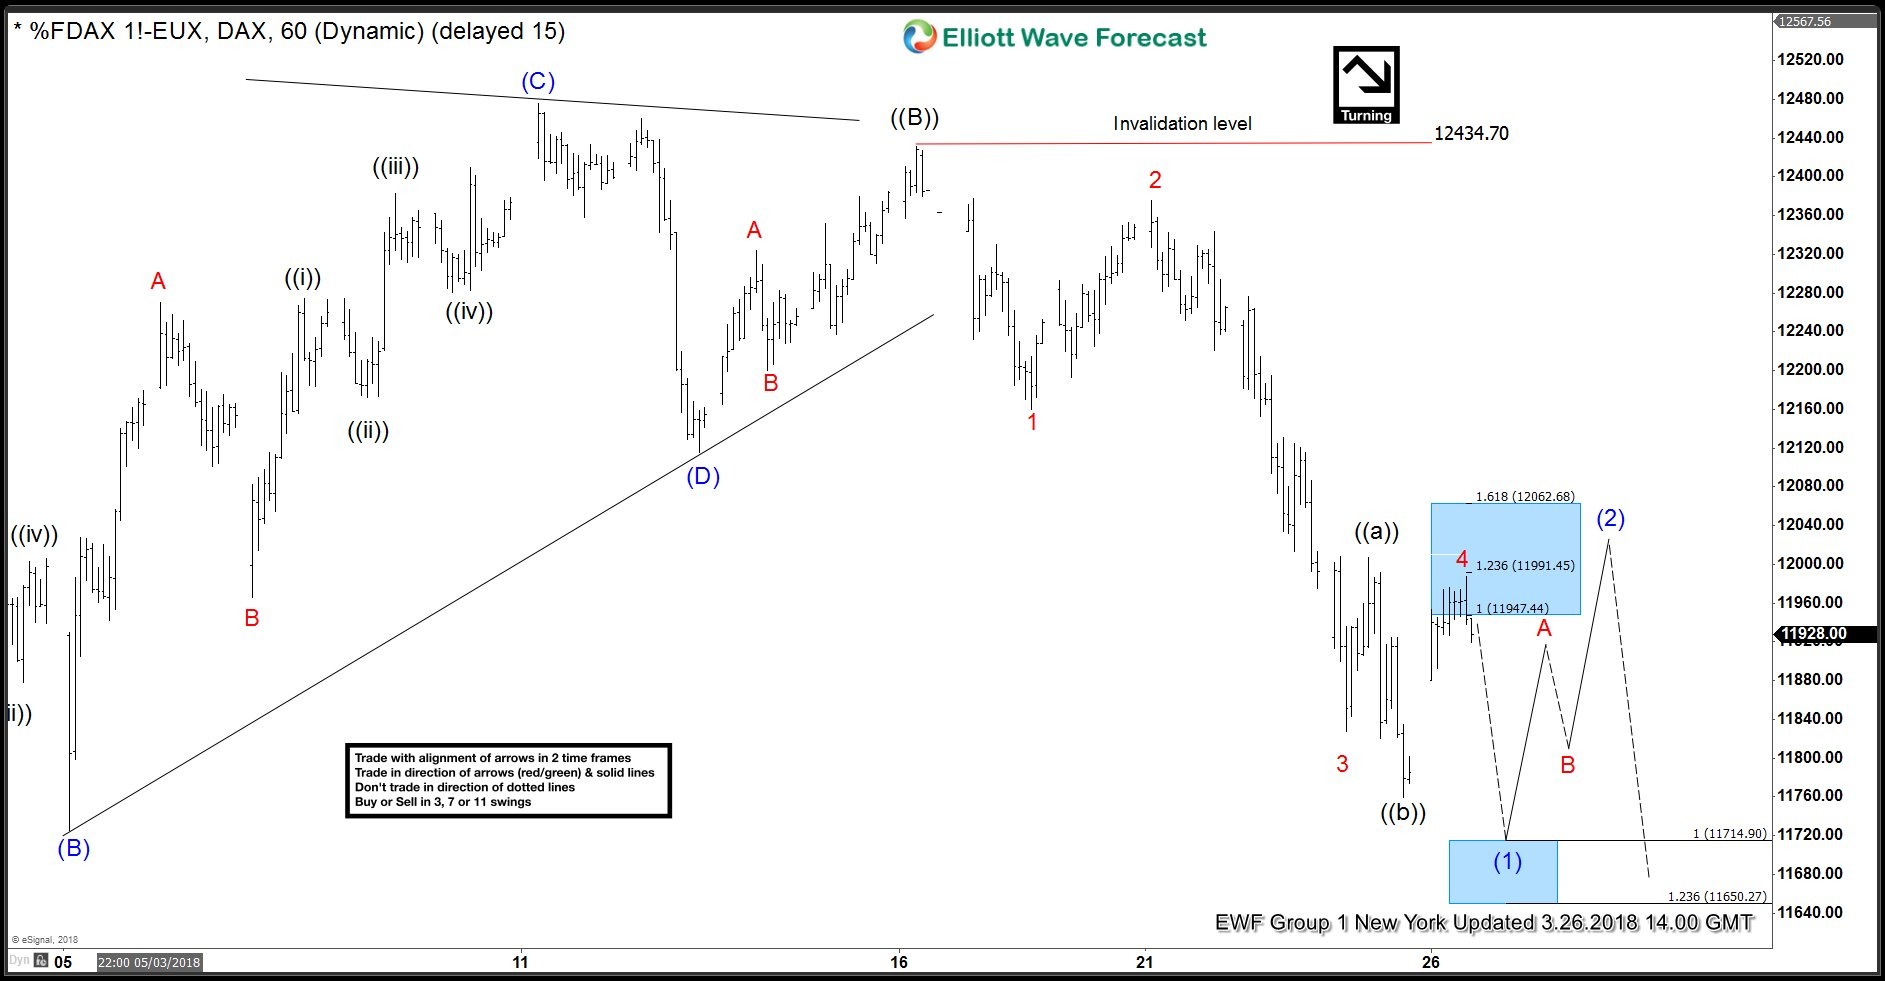 DAX Elliott Wave View 3.26.2018